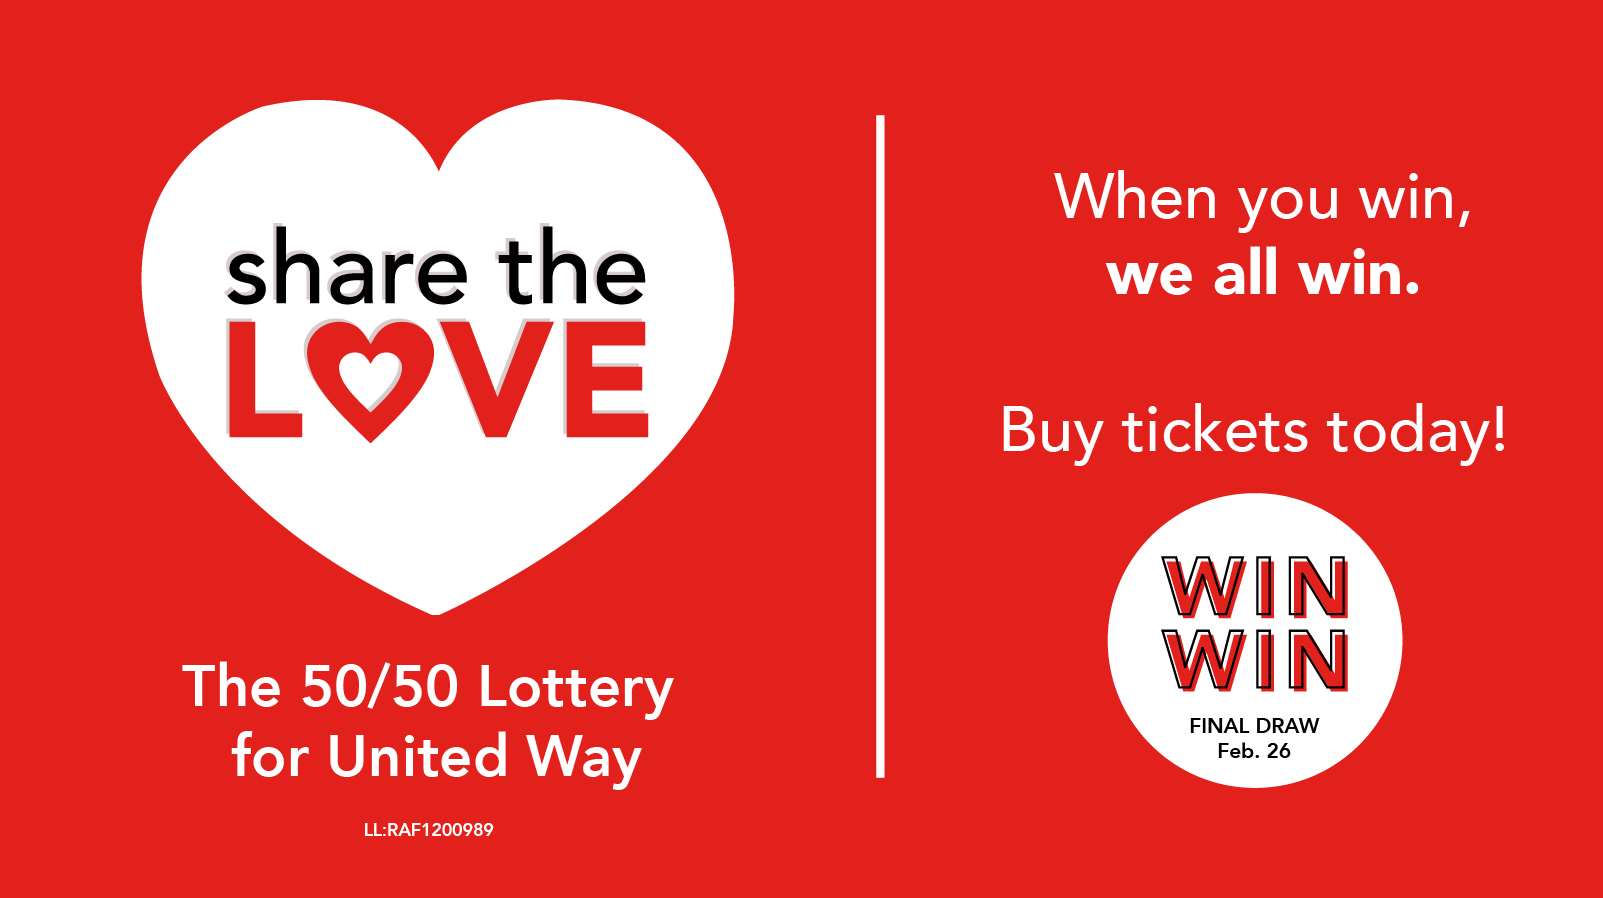 Share the Love, The 50/50 Lottery for United Way. When you win, we all win. Buy tickets today!